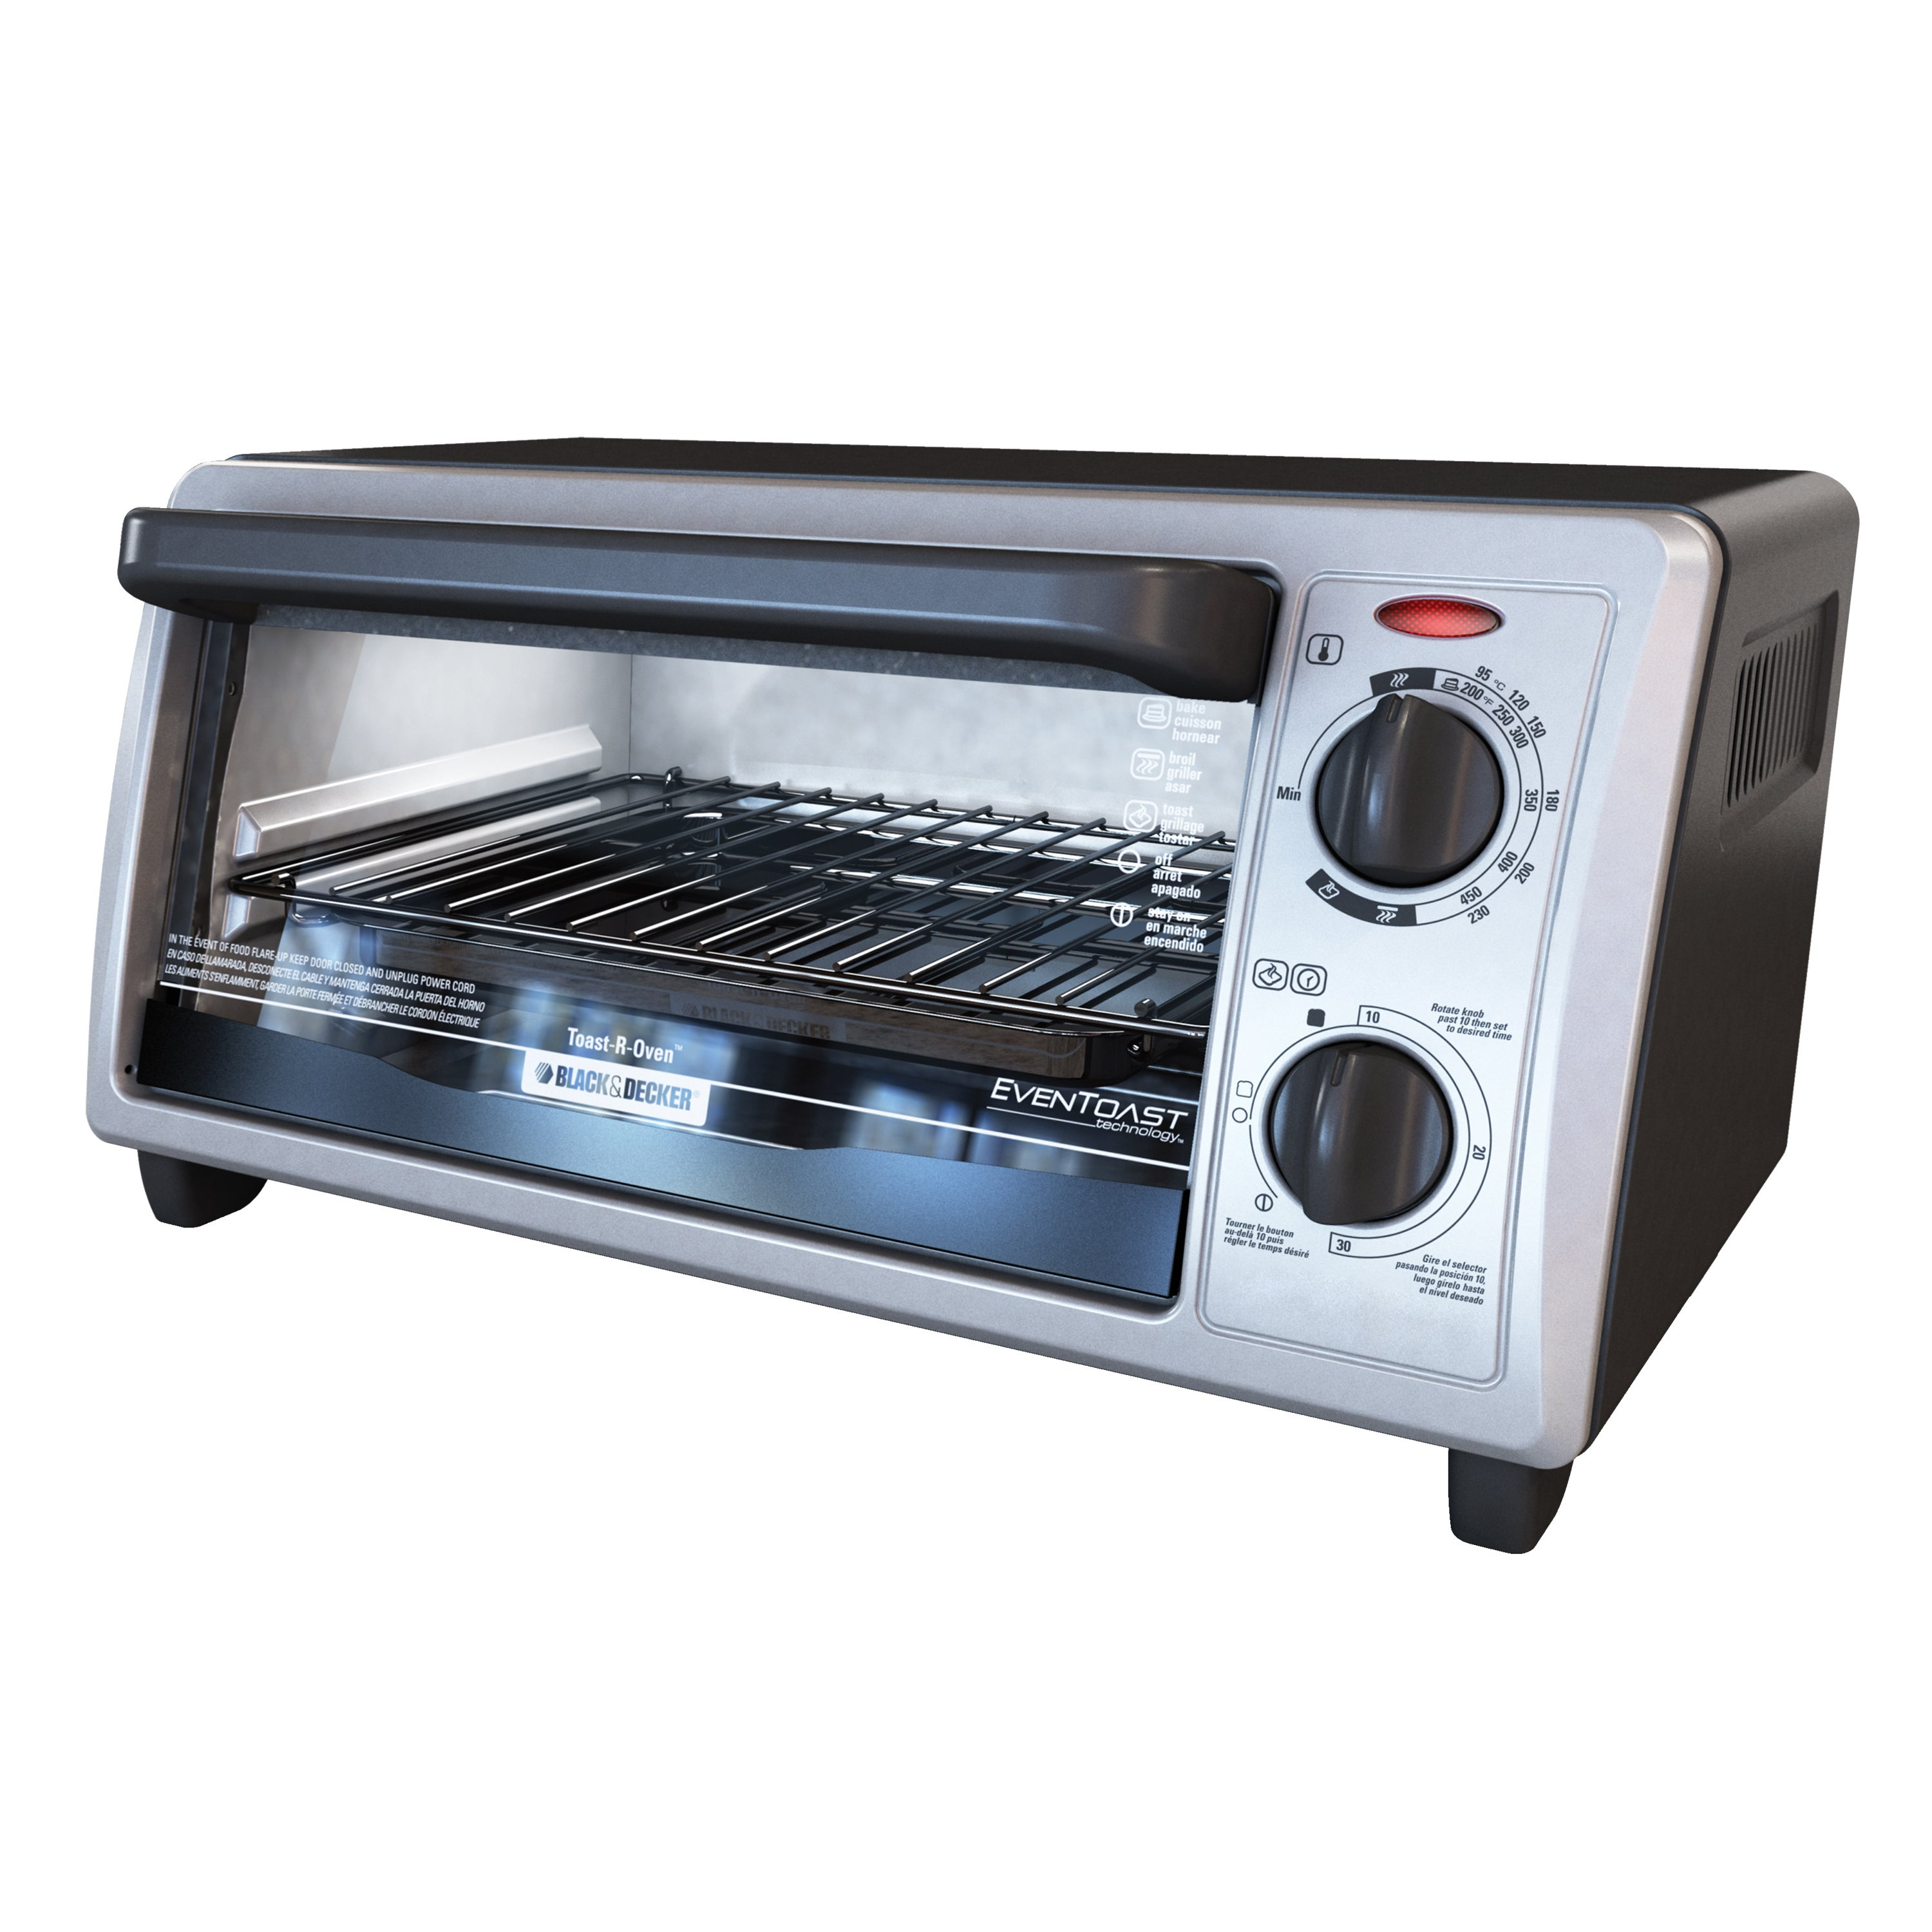 home beach hamilton today convection oven free black slice broiler stainless garden steel toaster product overstock with shipping